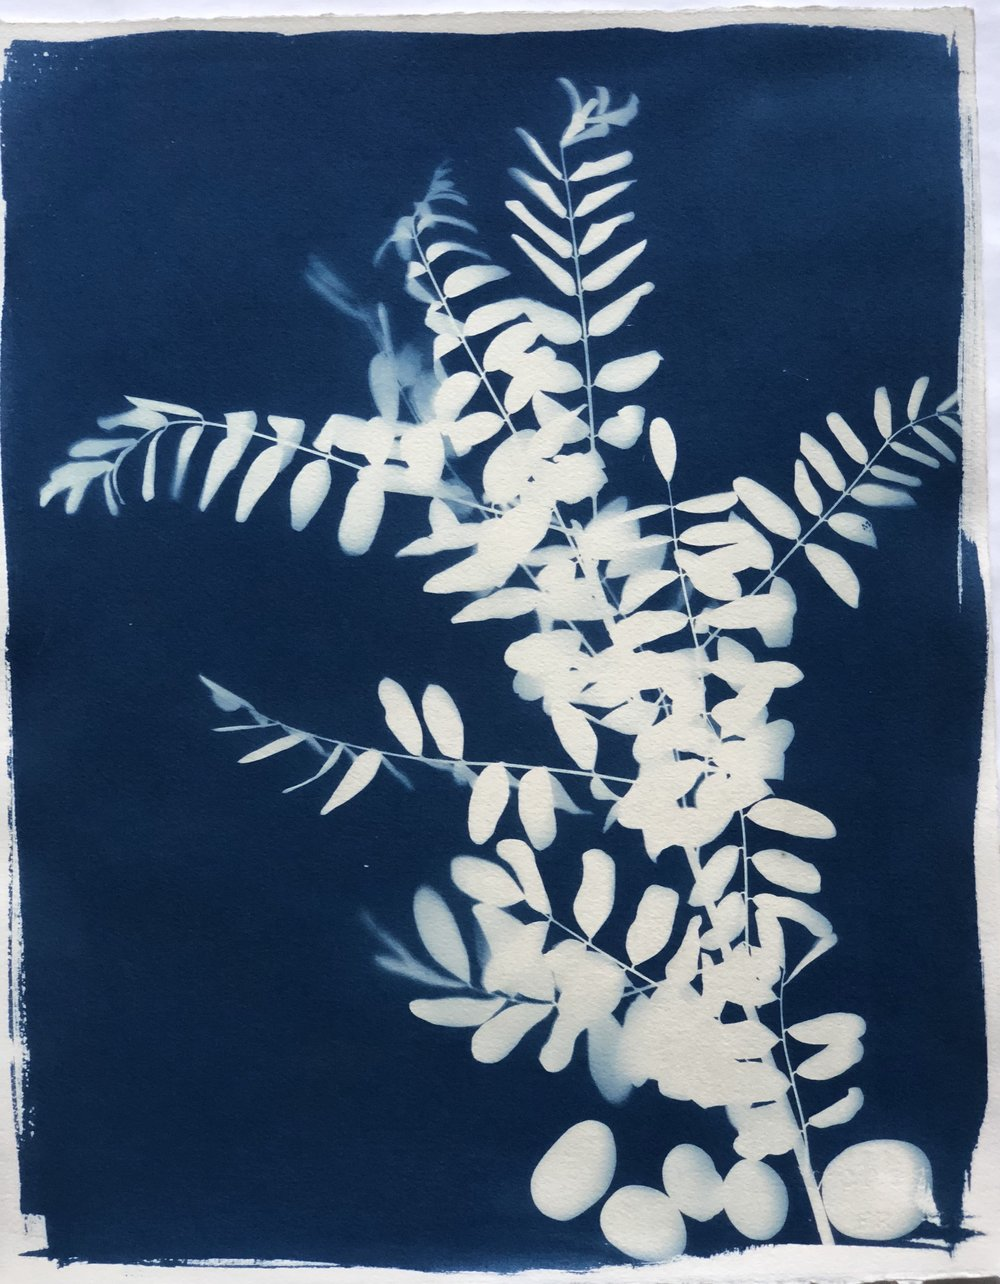 "Cyanotype C 16"" x 20"" by Amy Chase Gulden"